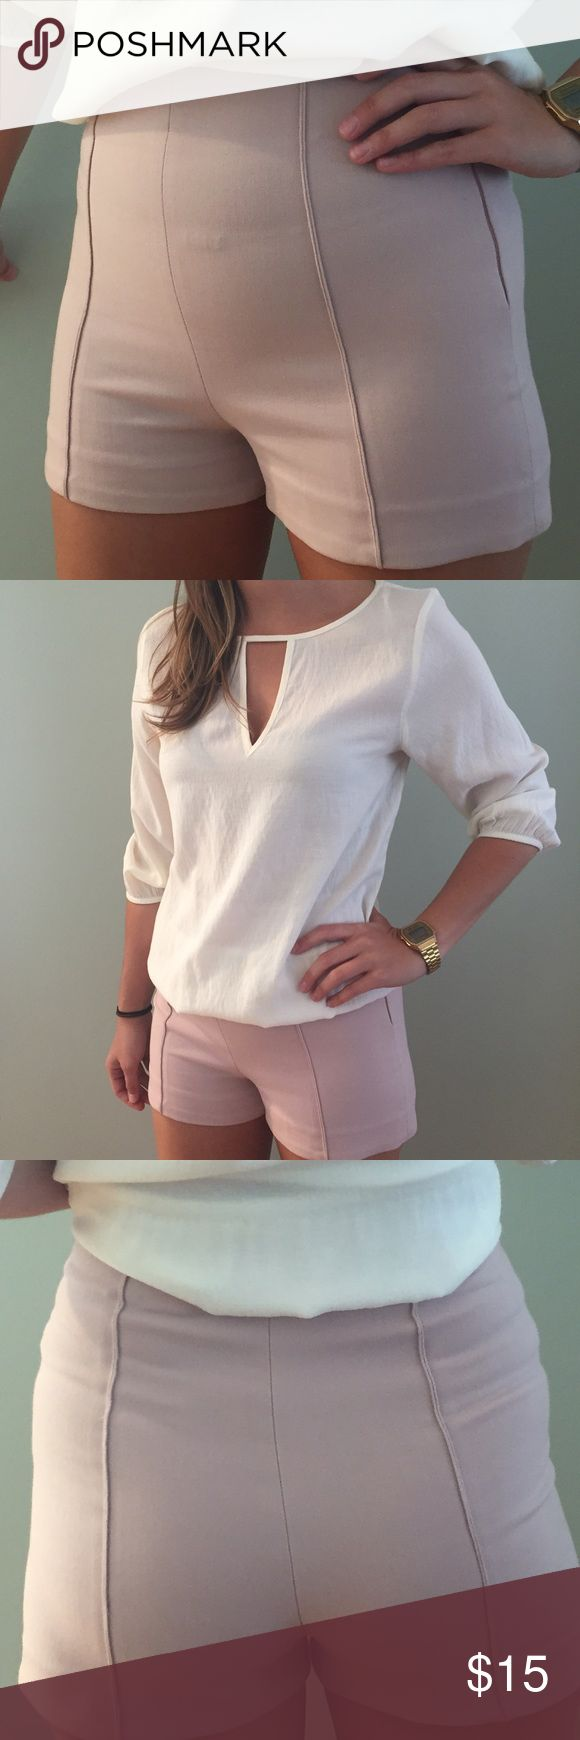 High Waisted pastel Pink Zara Shorts Slightly stretchy pale pink Zara Shorts with a side zipper. Zara Shorts